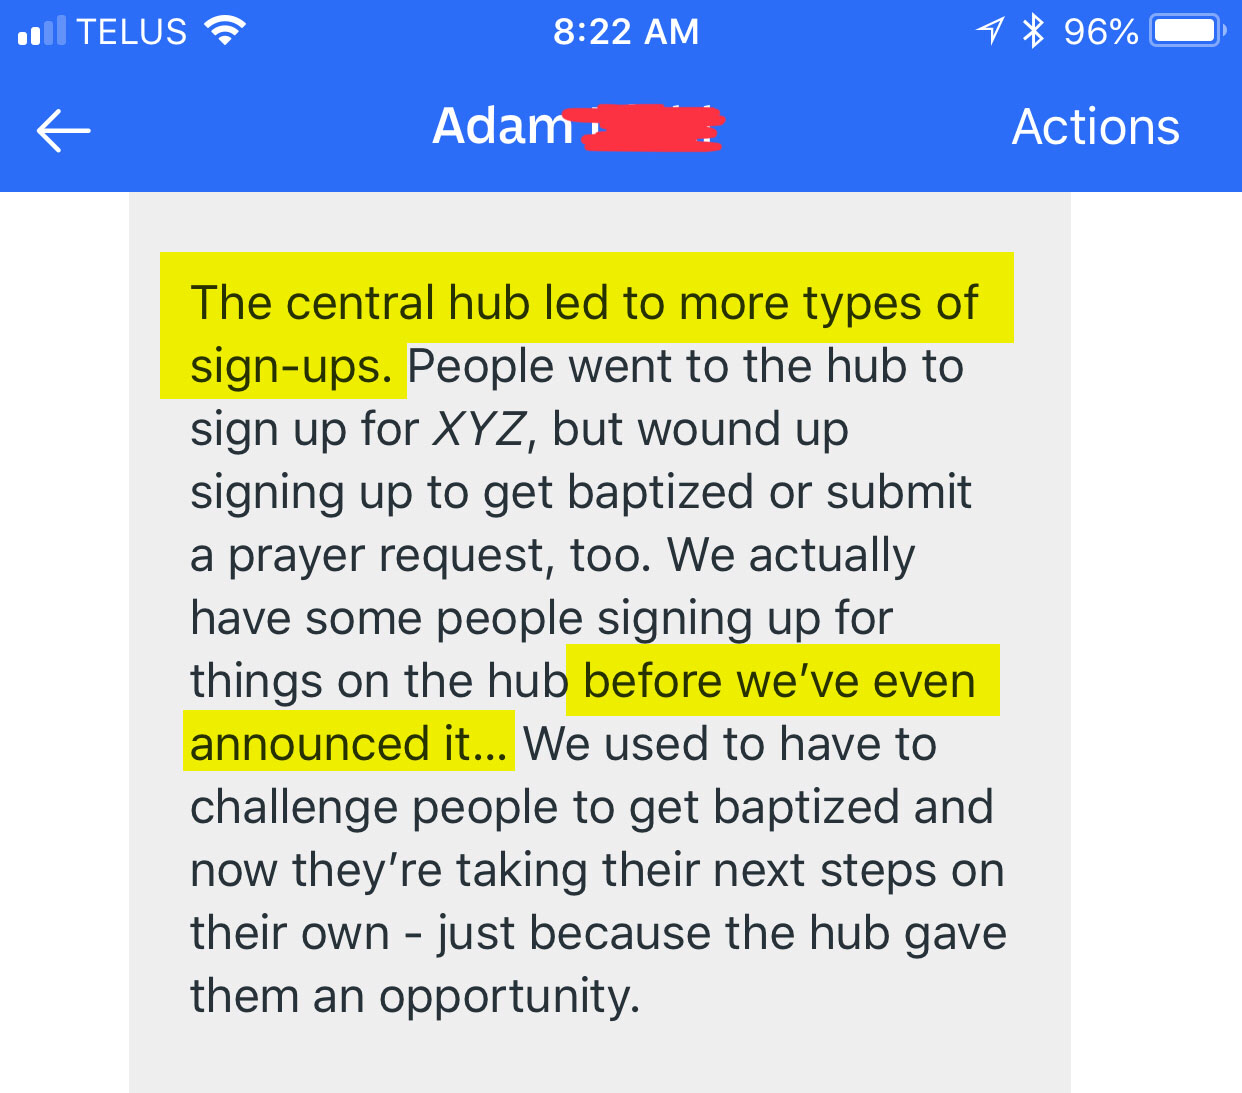 The central hub led to more types of signups. We actually have some people signing up for things on the hub before we've even announced it...